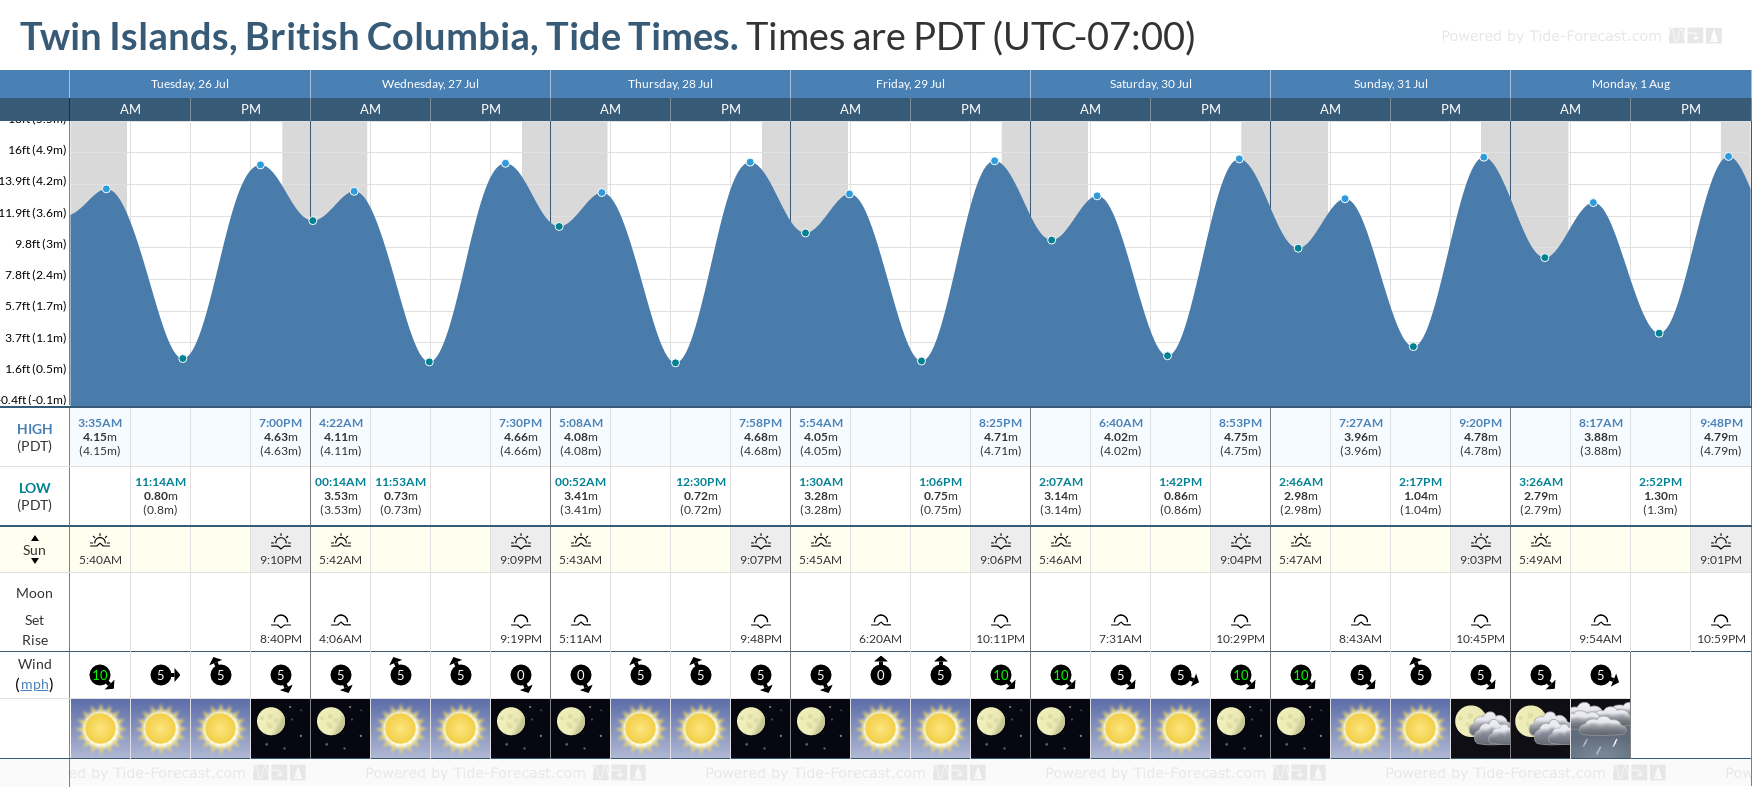 Twin Islands, British Columbia Tide Chart including high and low tide tide times for the next 7 days